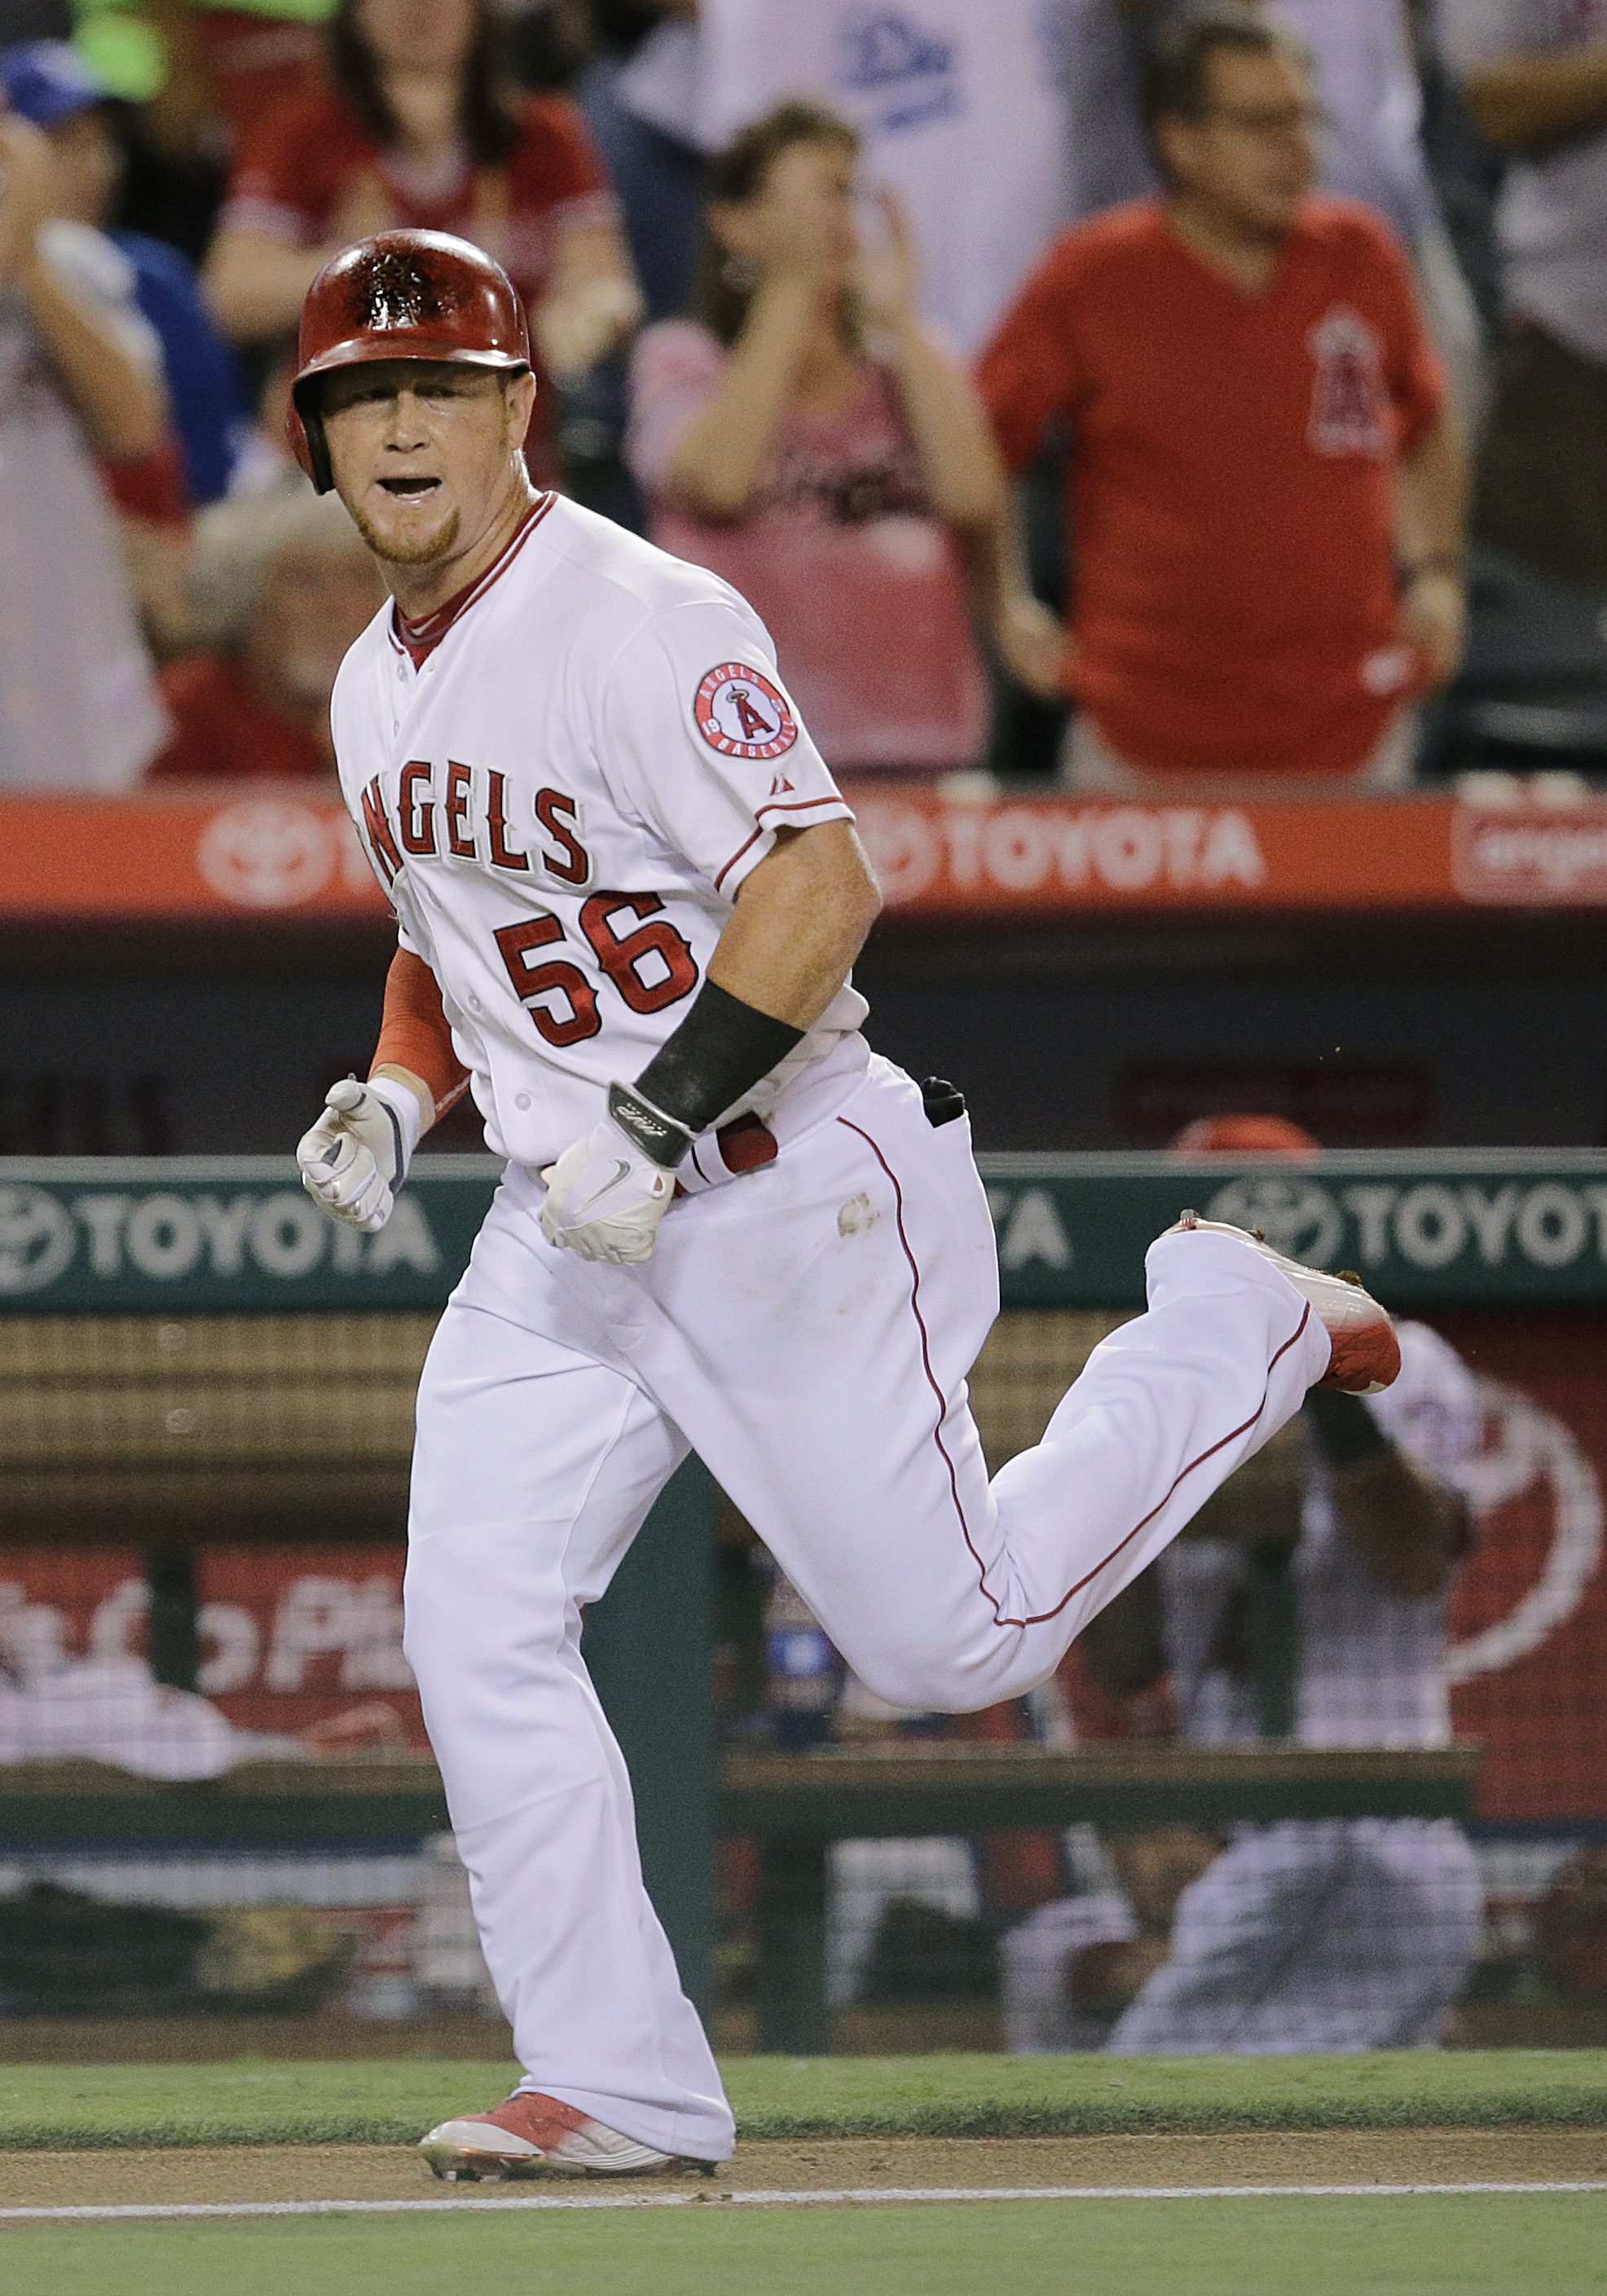 Los Angeles Angels' Kole Calhoun celebrates his two-run home run during the fifth inning of a baseball game against the Los Angeles Dodgers, Monday, Sept. 7, 2015, in Anaheim, Calif. (AP Photo/Jae C. Hong)